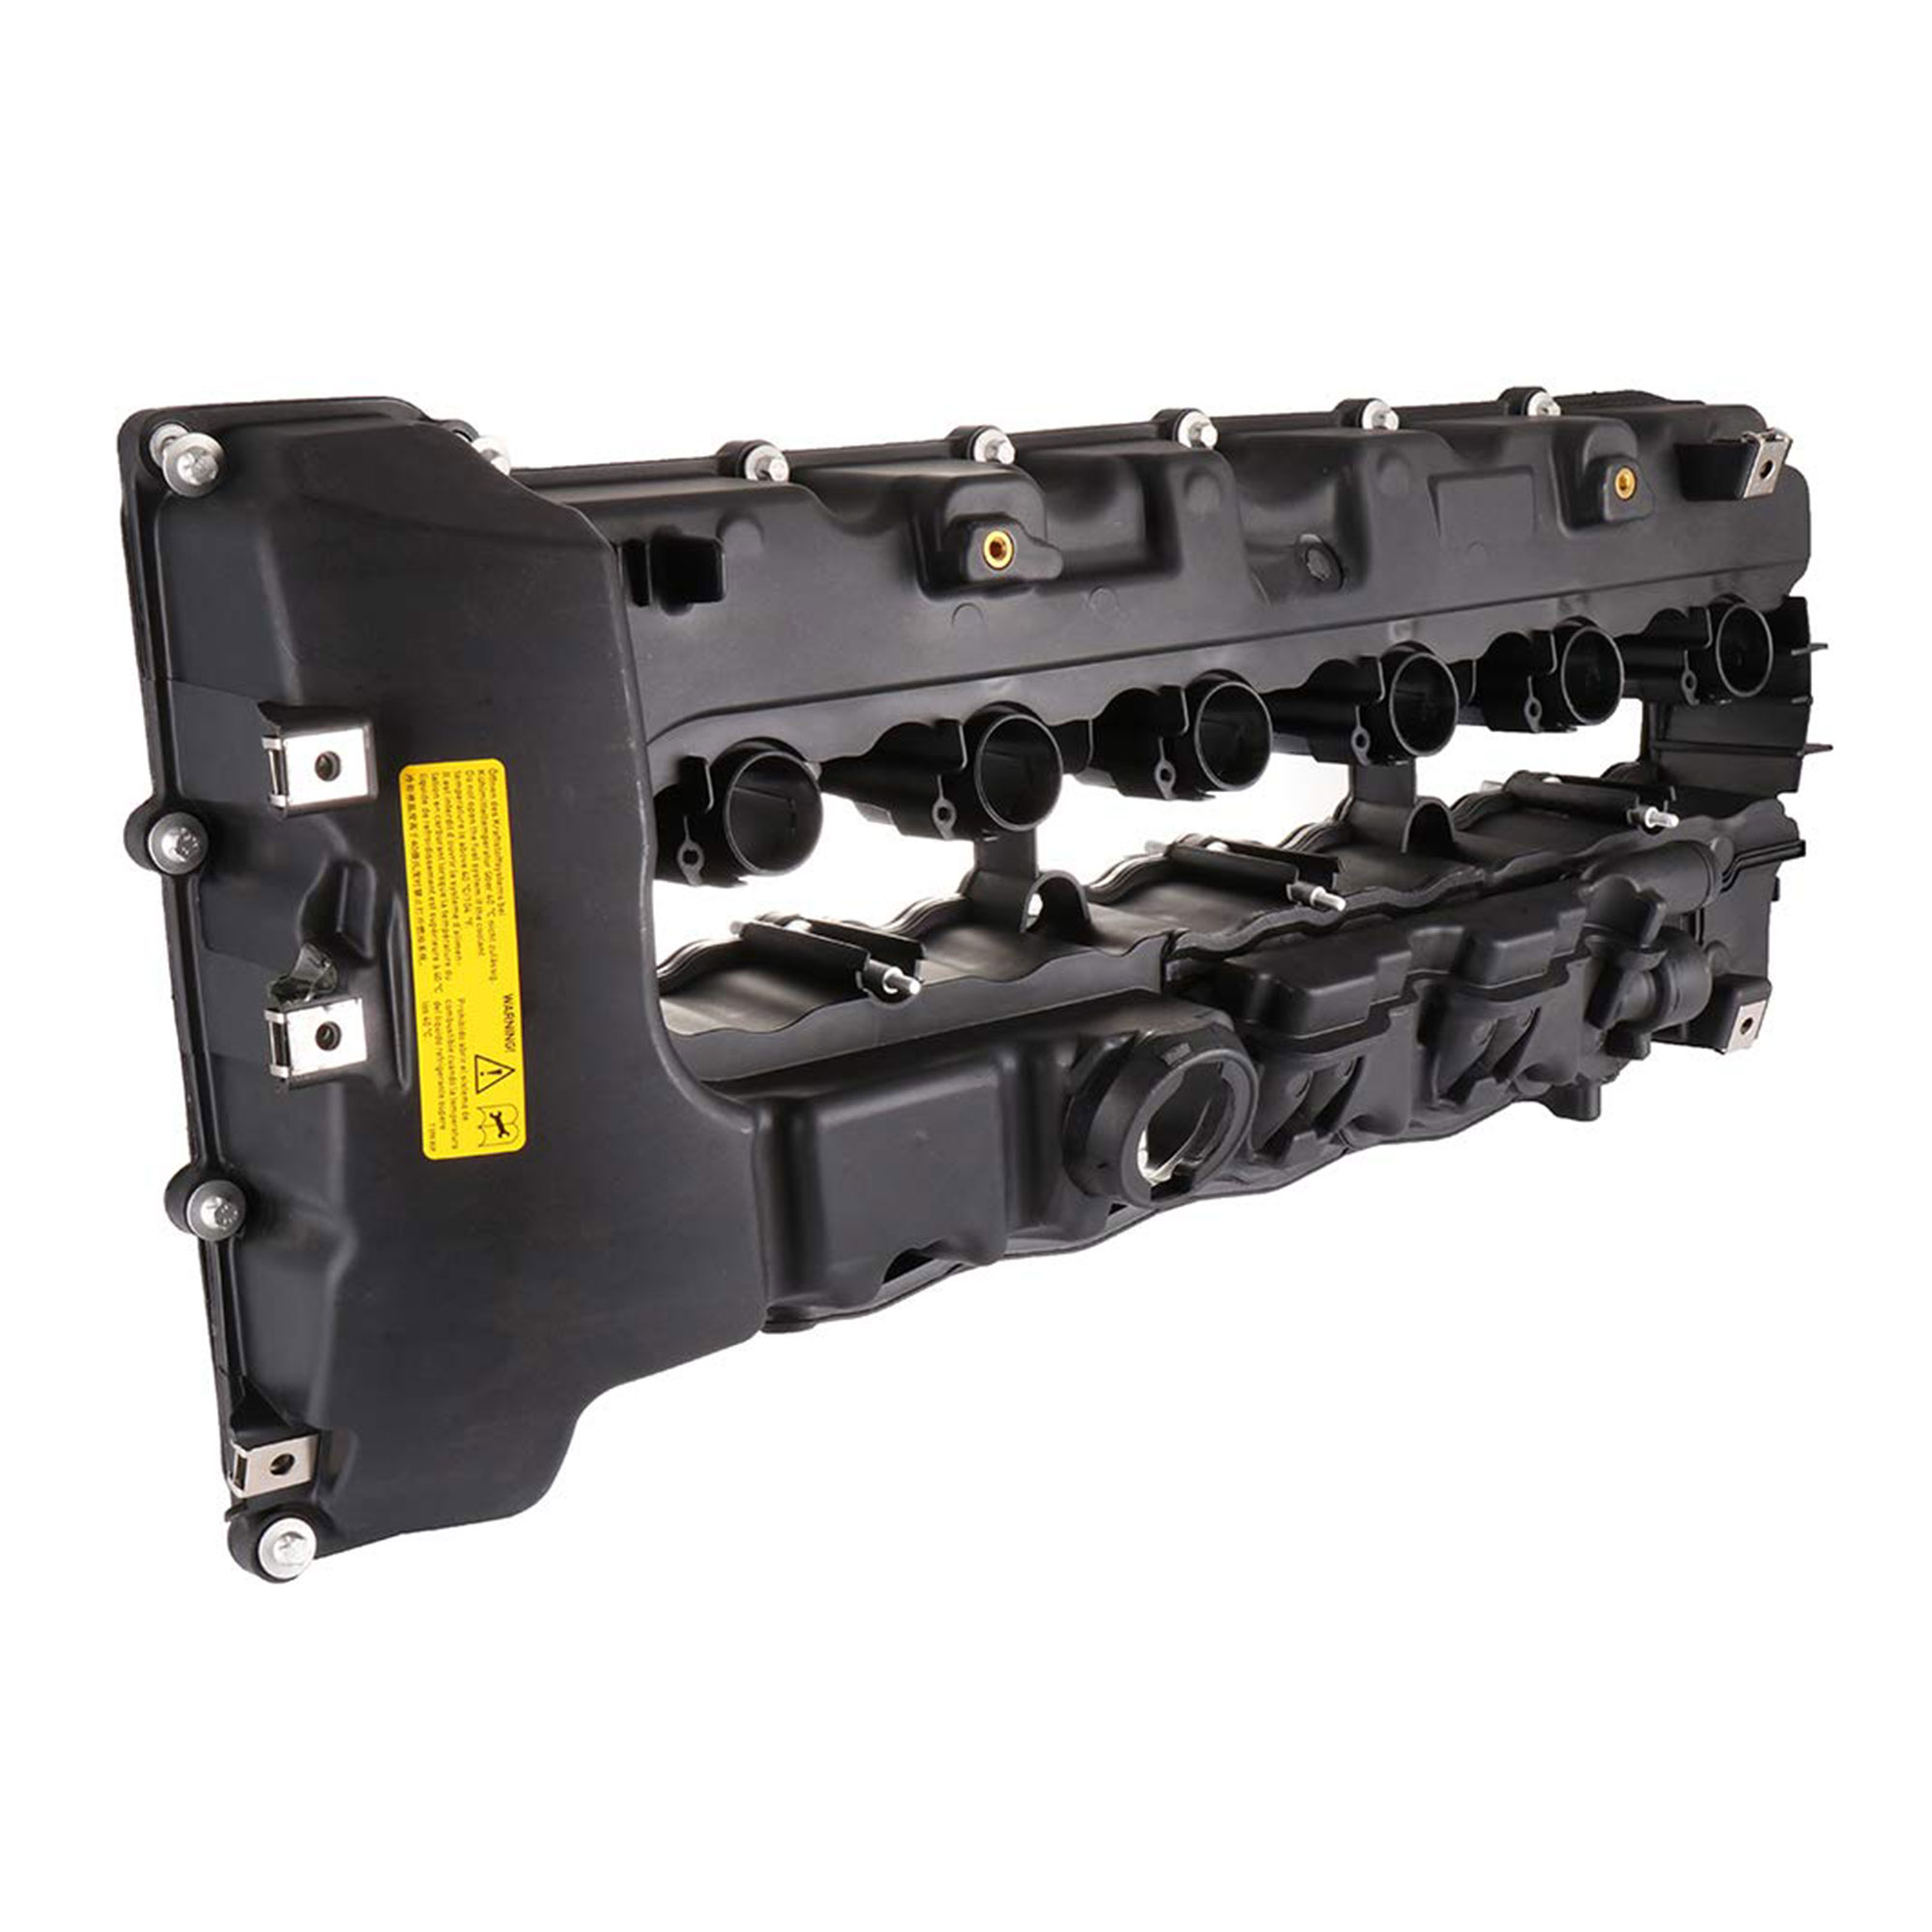 Engine Valve Cover Compatible fit for BMW 535i 135i 335i X6 Z4 N54 Turbo Valve Cover 11127565284